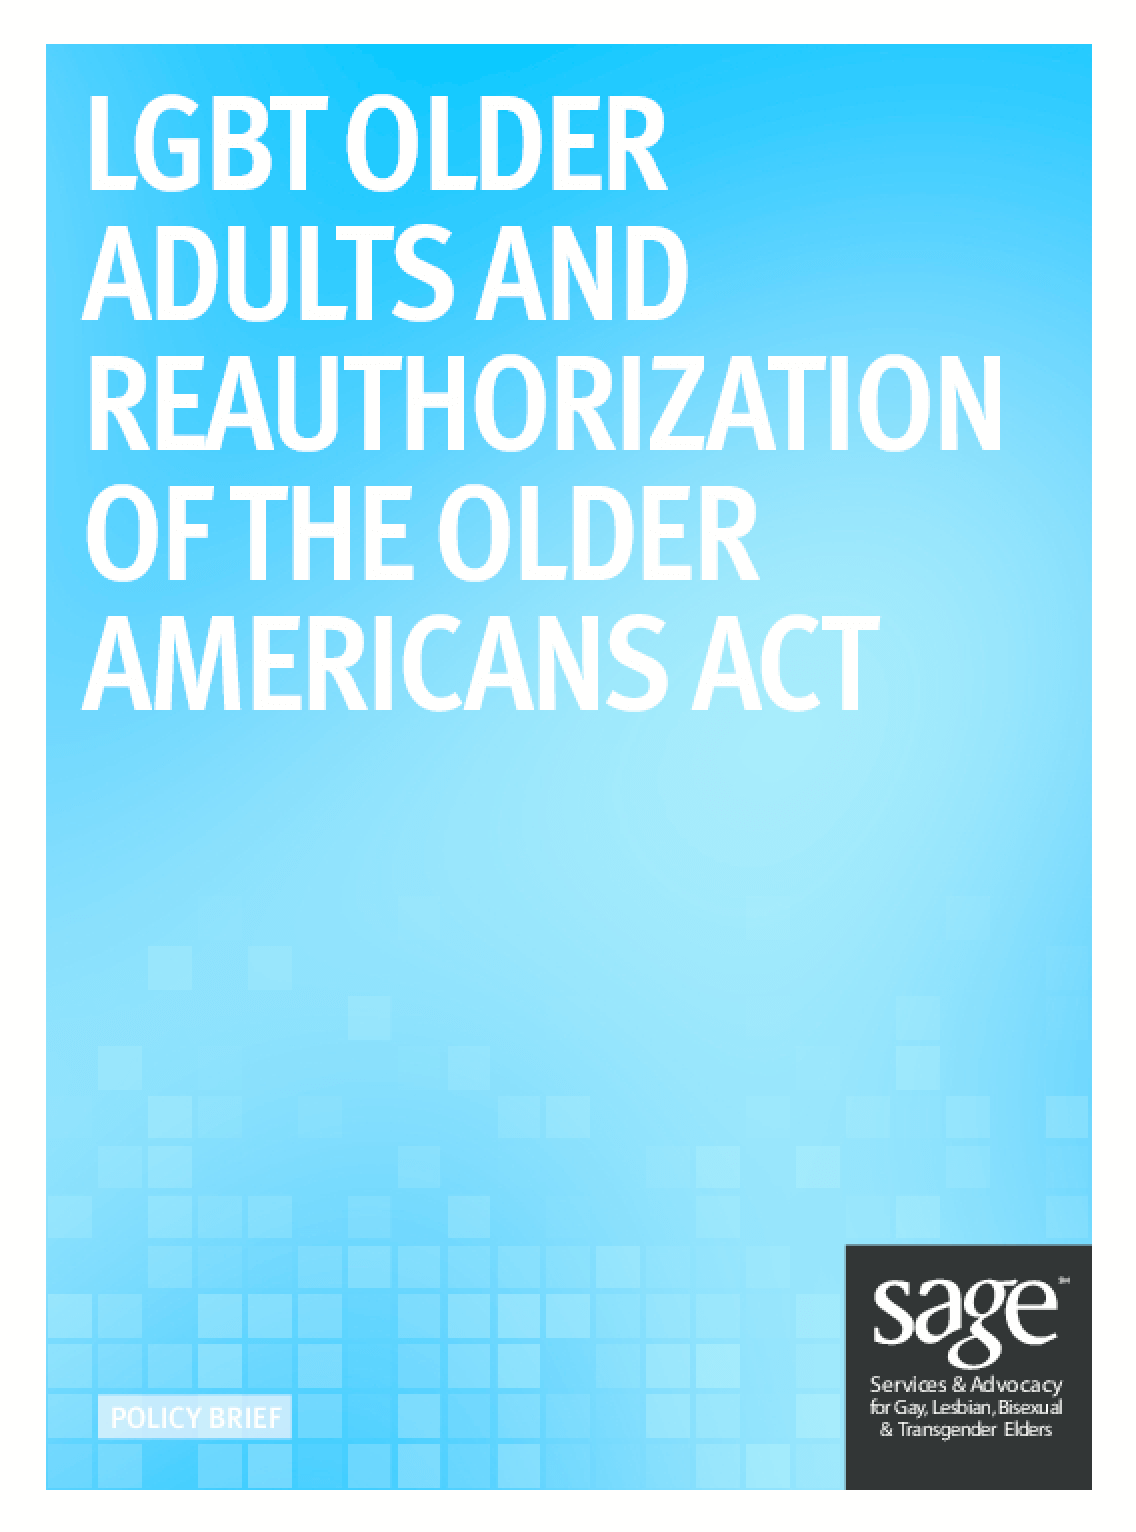 LGBT Older Adults and Reauthorization of Older Americans Act